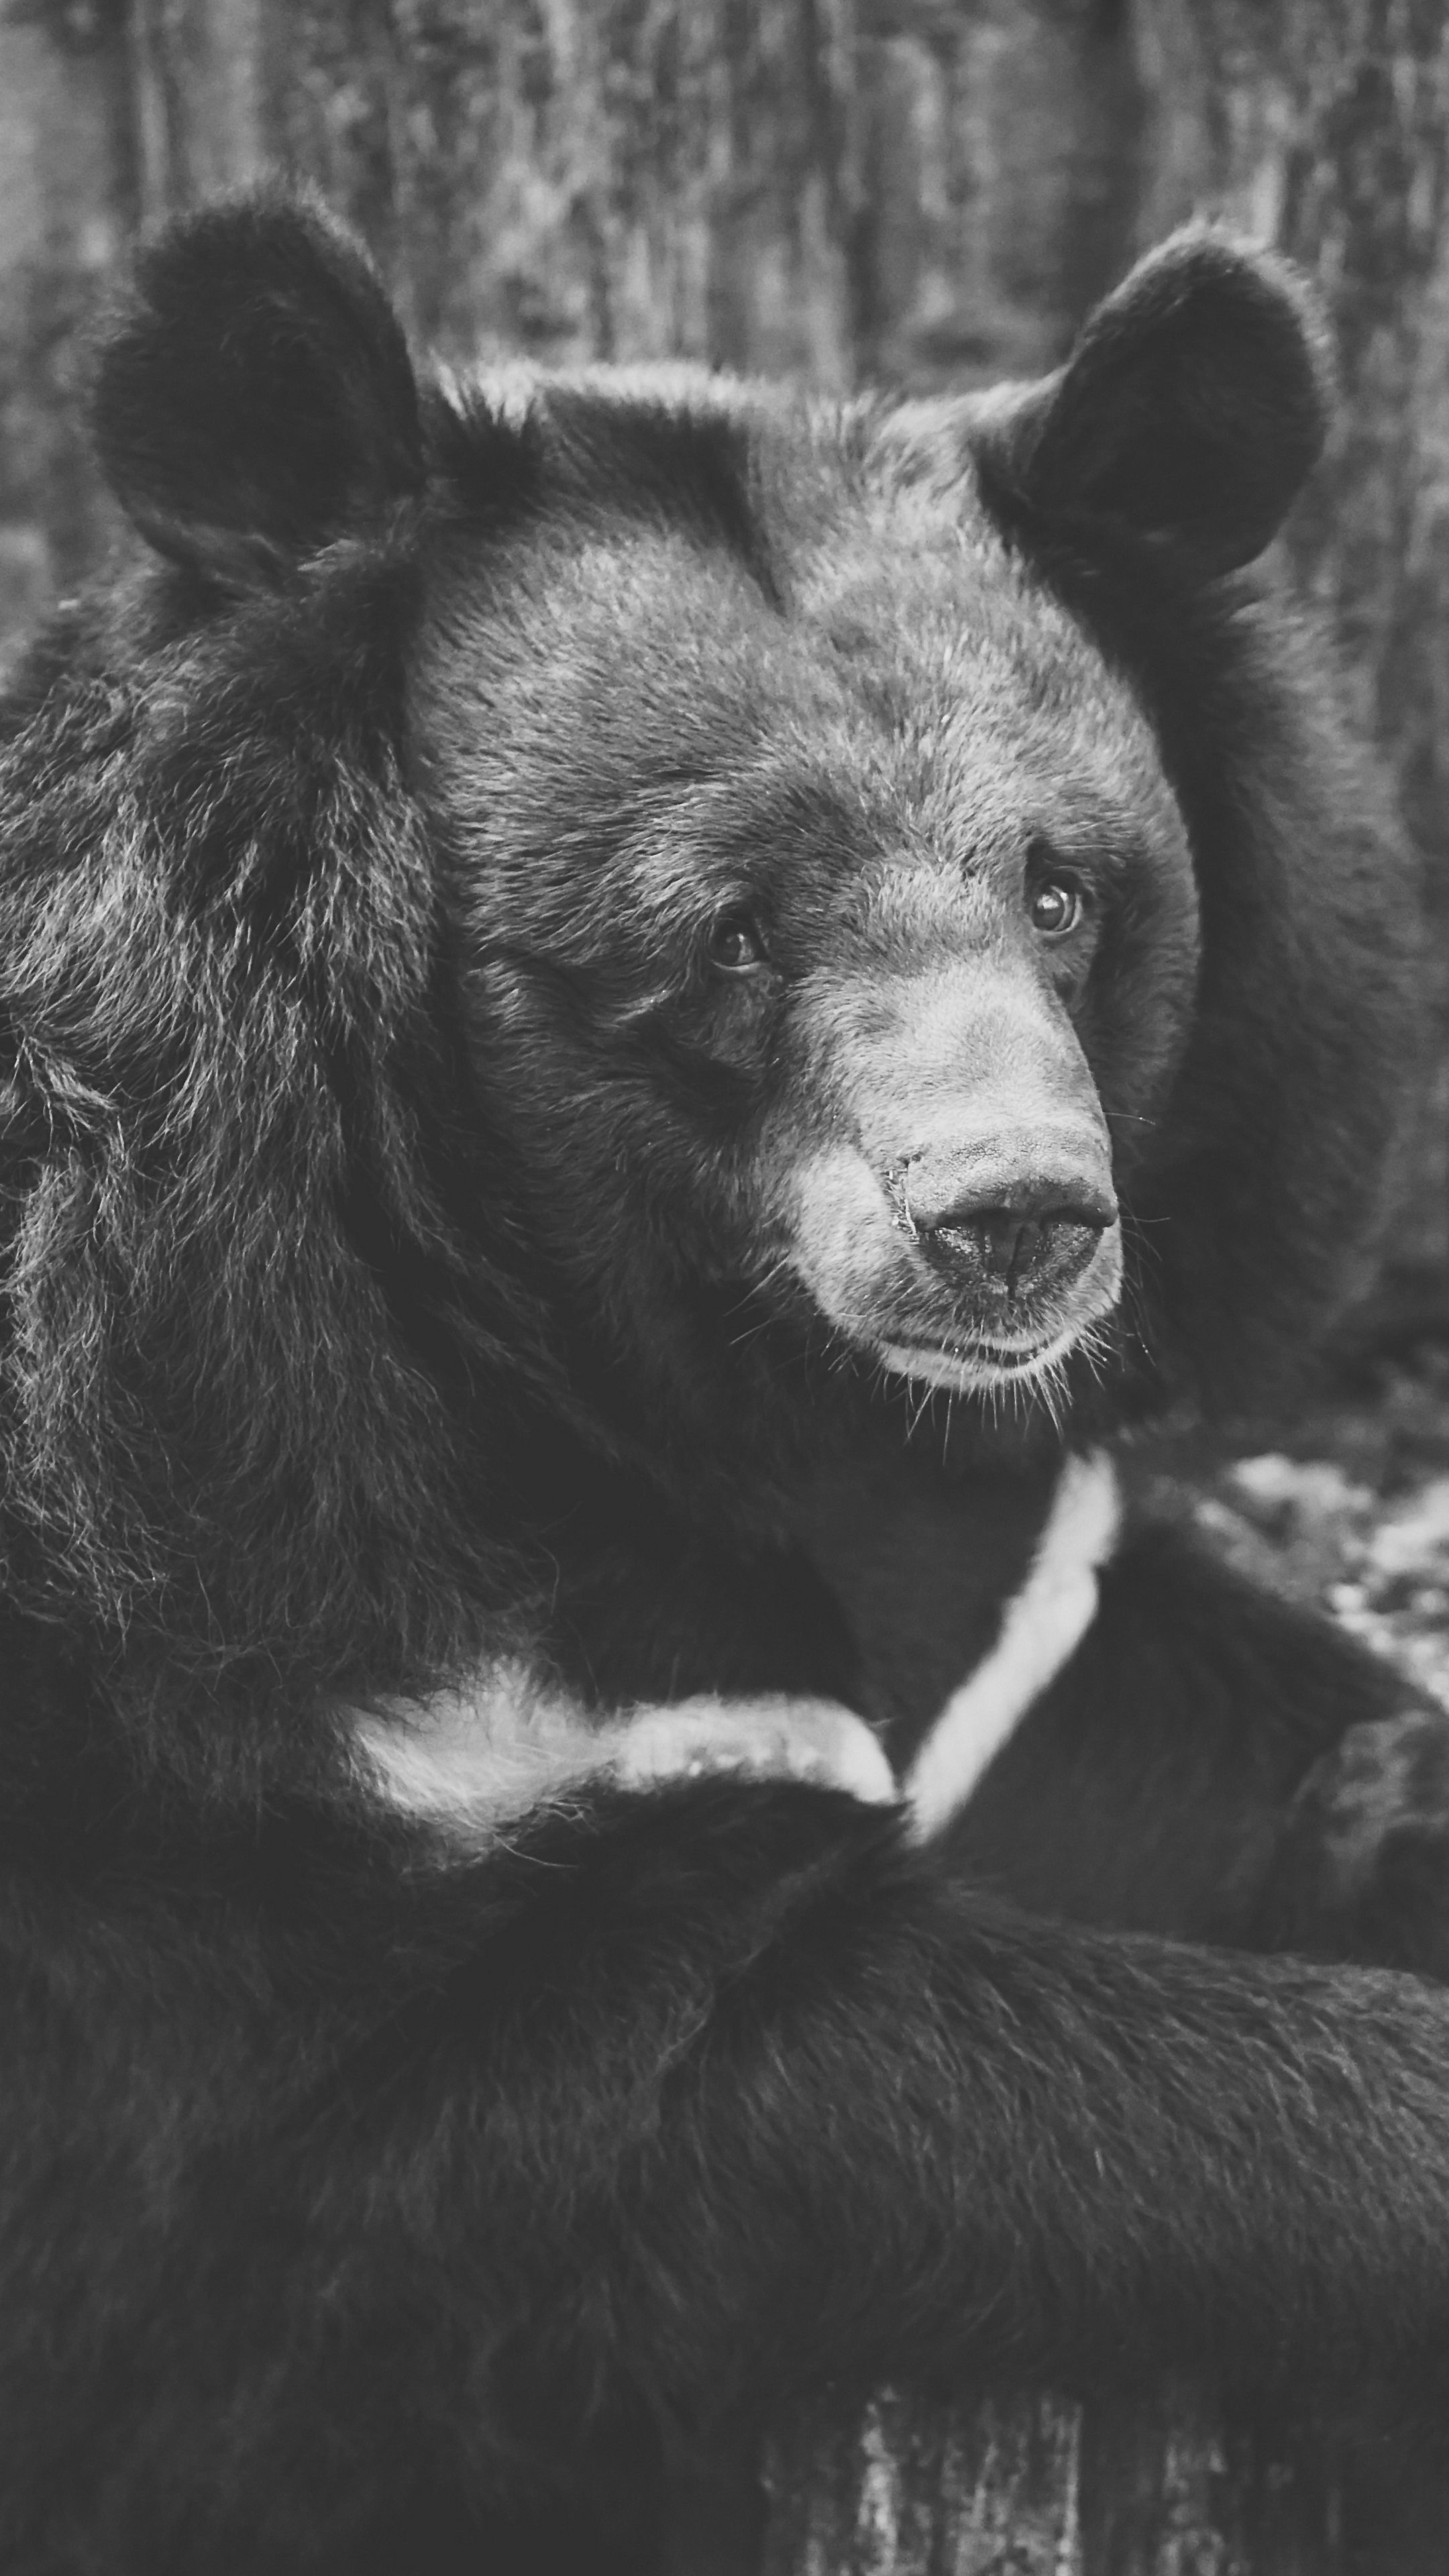 Animals Bear Black Sadness Wallpapers Hd 4k Background For Android